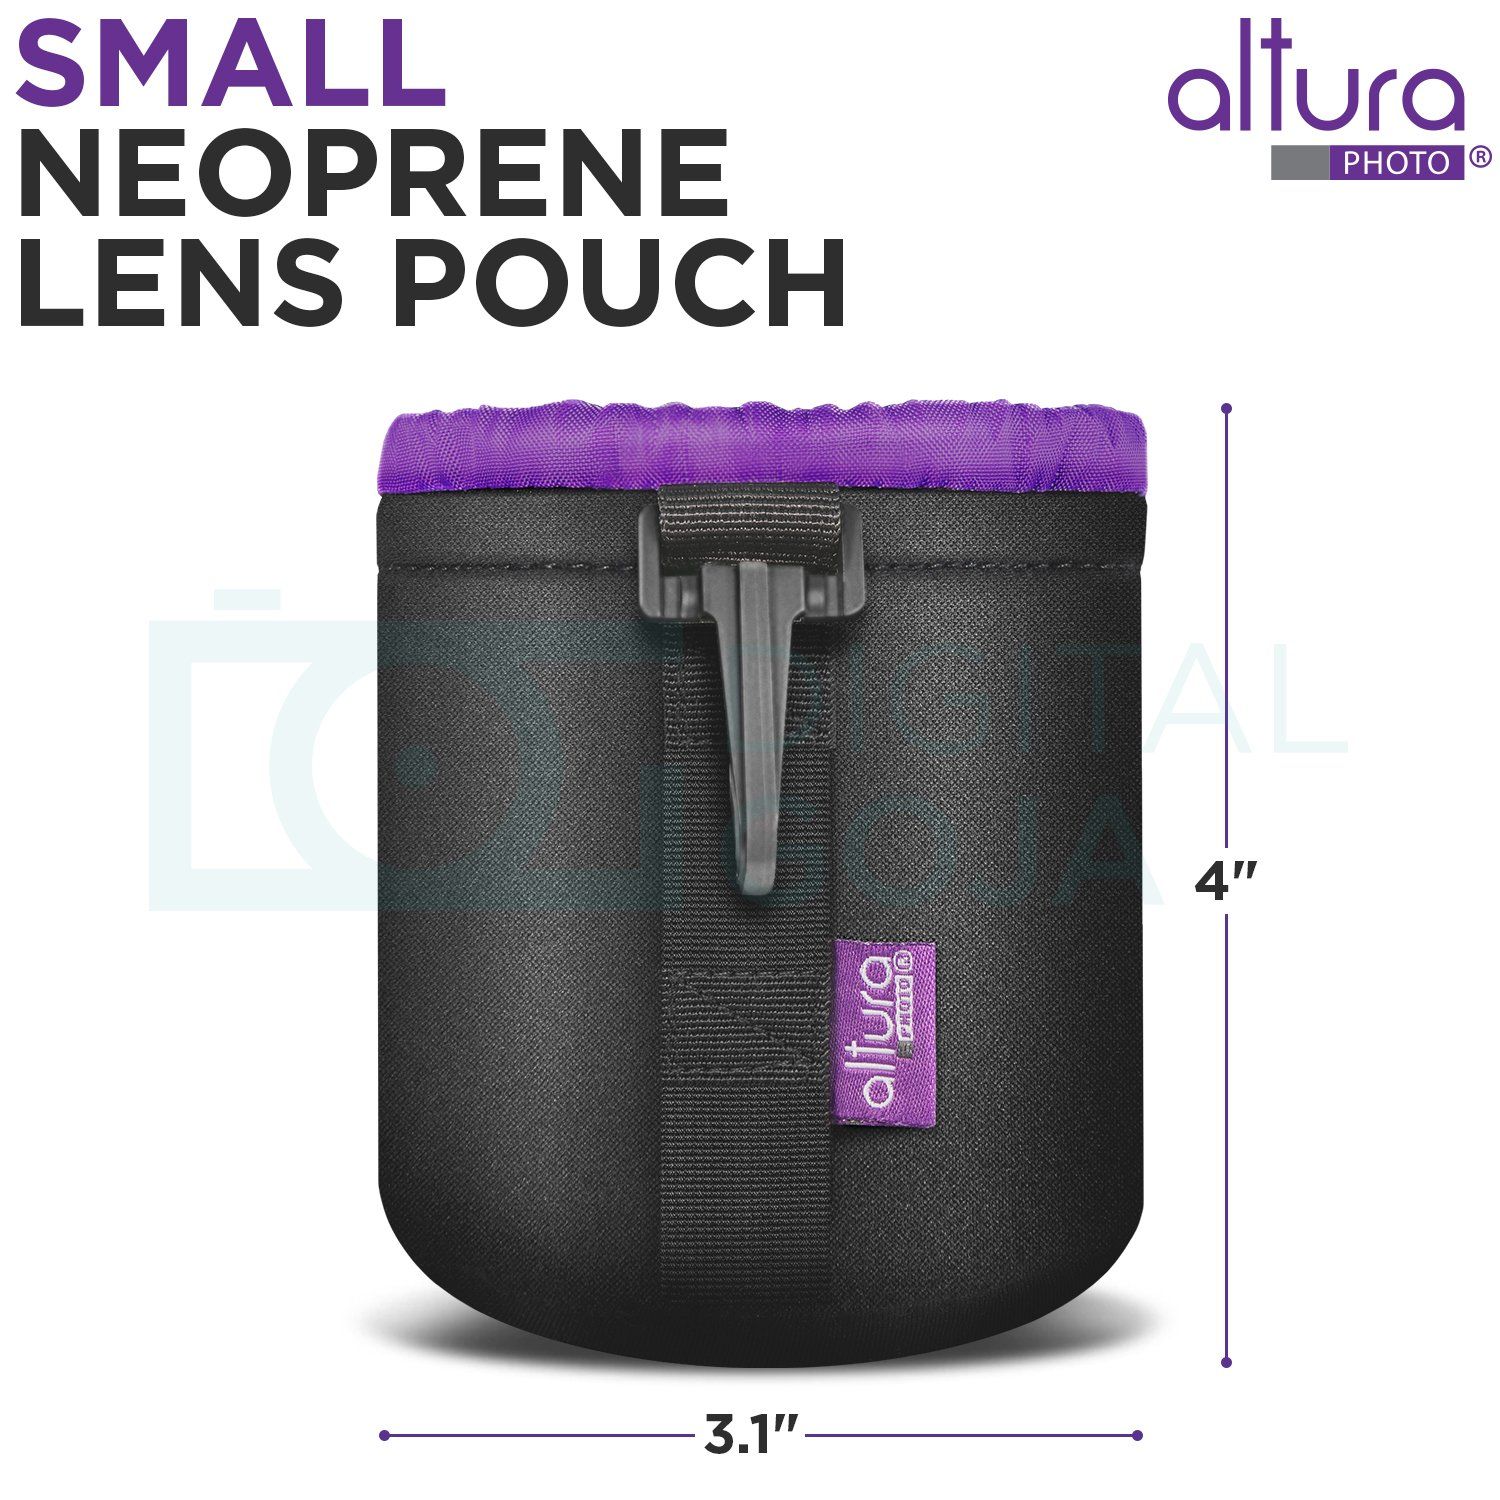 Neoprene Lens Pouch Canon EF 50mm f//1.8 STM Lens w//Essential Photo Bundle Altura Photo UV-CPL-ND4 Filter Kit Includes: Canon USA Warranty Camera Cleaning Set